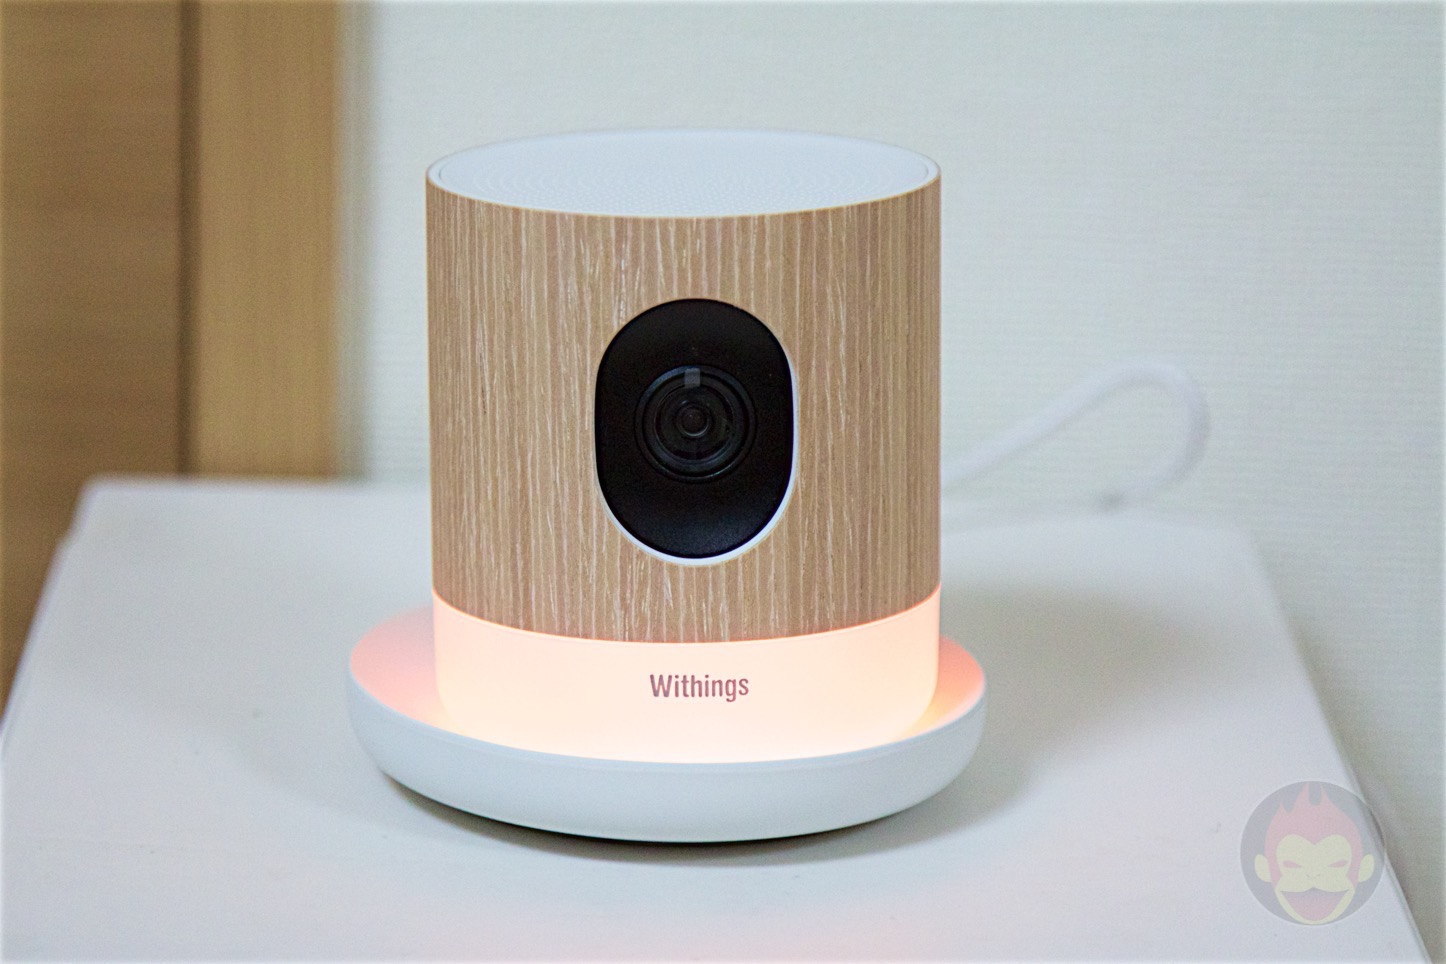 Withings-Home-Camera-for-checking-pets-and-babies-05.jpg